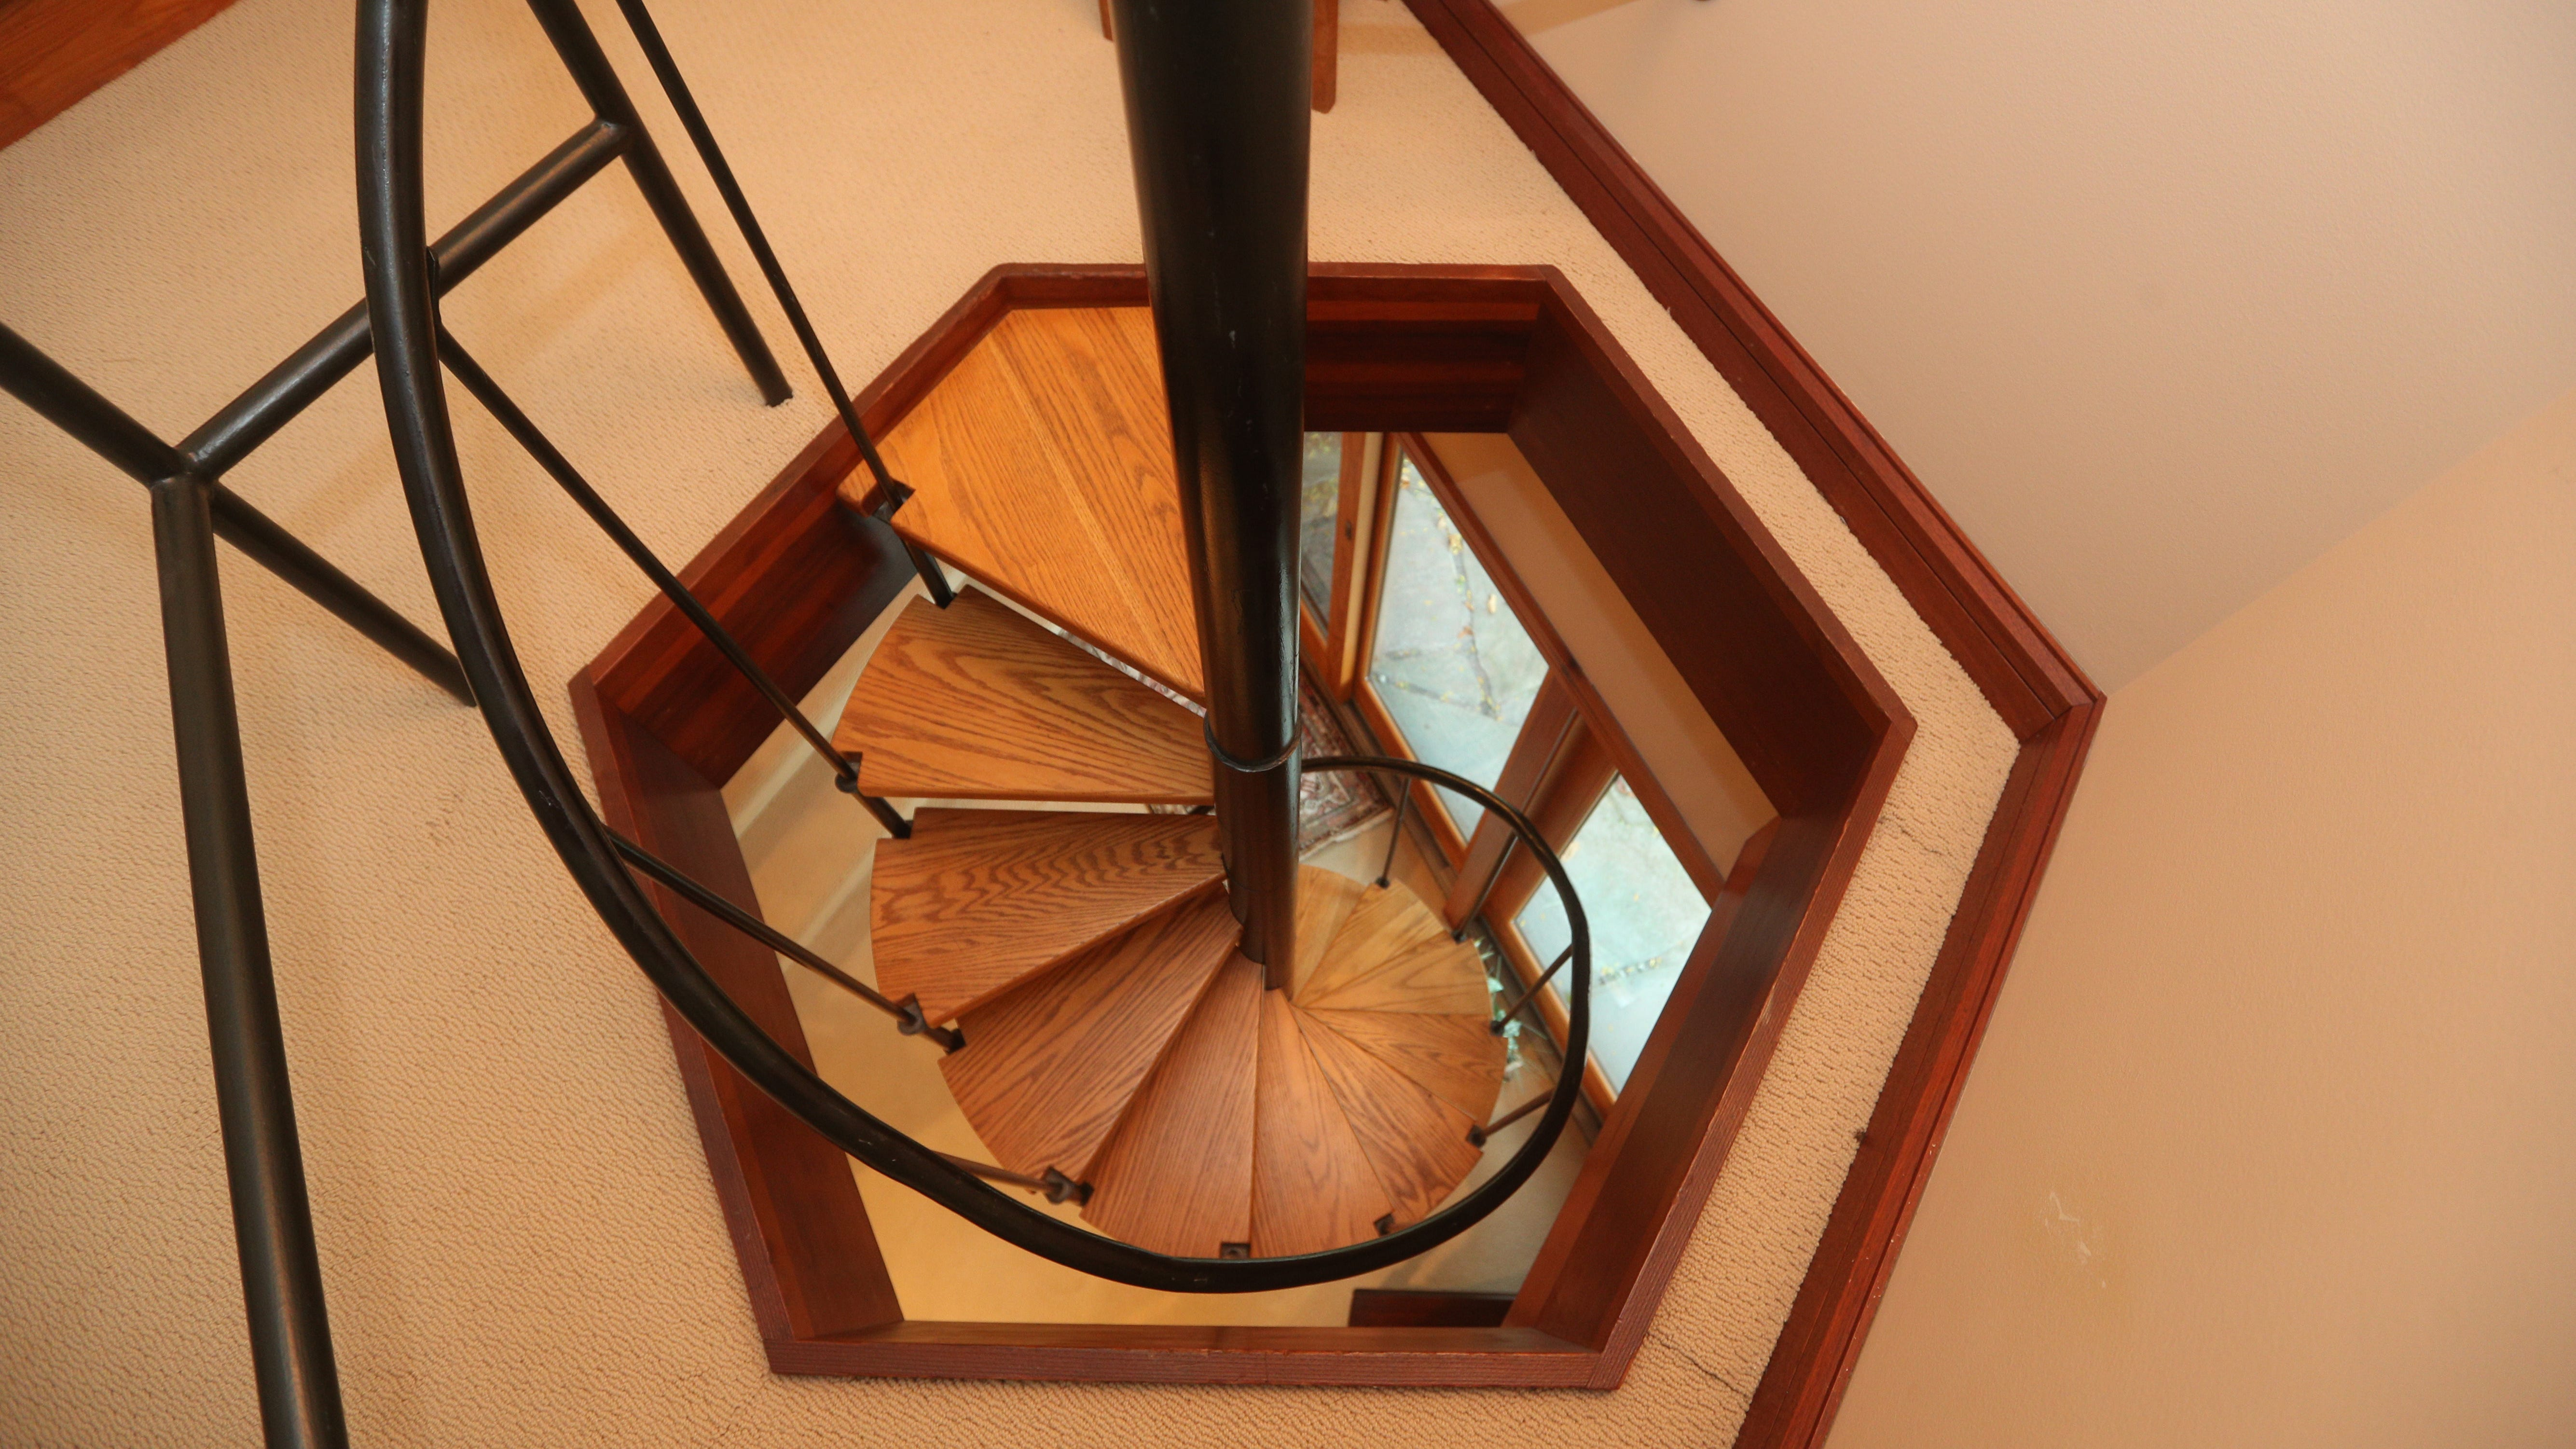 This spiral staircase leads to a cozy loft space.